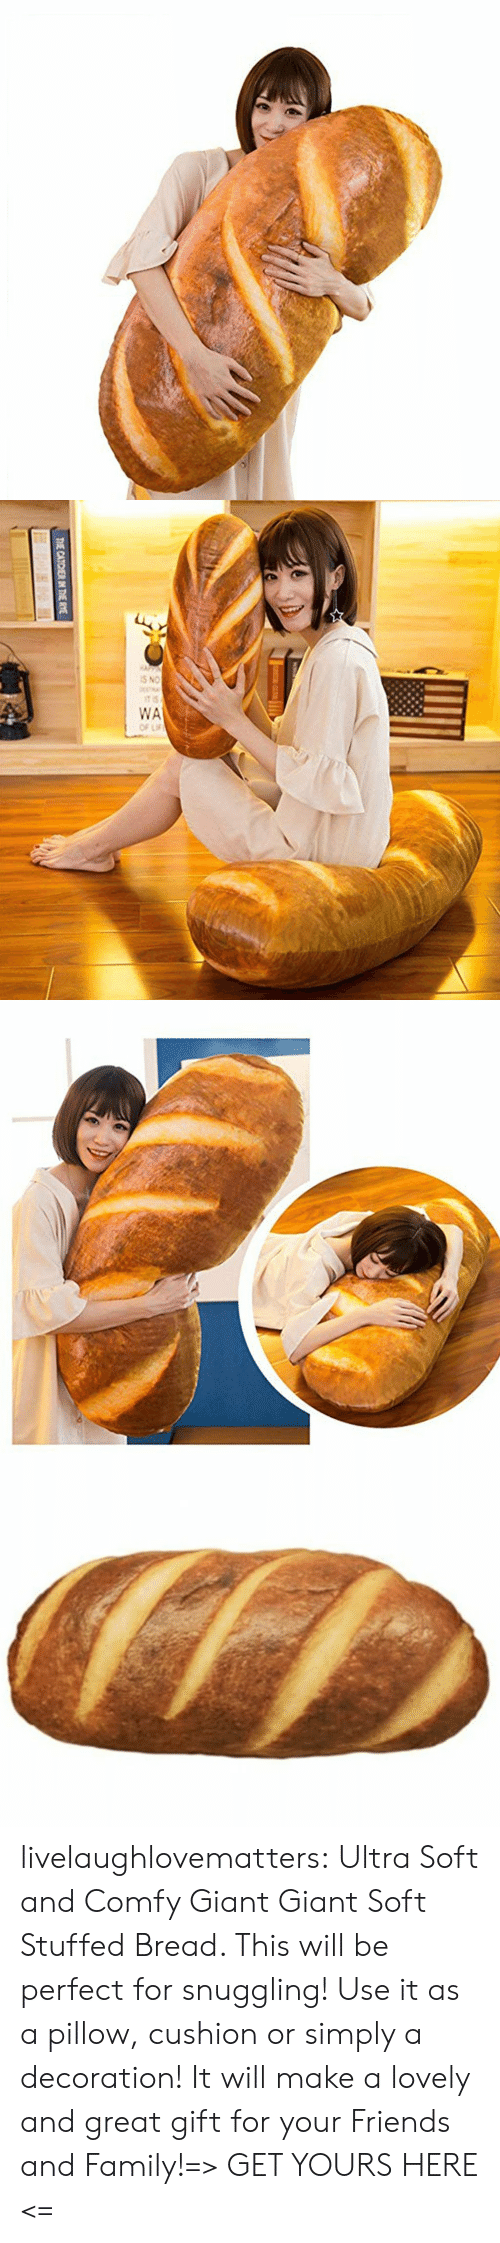 stuffed: THE CATCHER IN THE RYE livelaughlovematters:  Ultra Soft and Comfy Giant Giant Soft Stuffed Bread. This will be perfect for snuggling! Use it as a pillow, cushion or simply a decoration! It will make a lovely and great gift for your Friends and Family!=> GET YOURS HERE <=